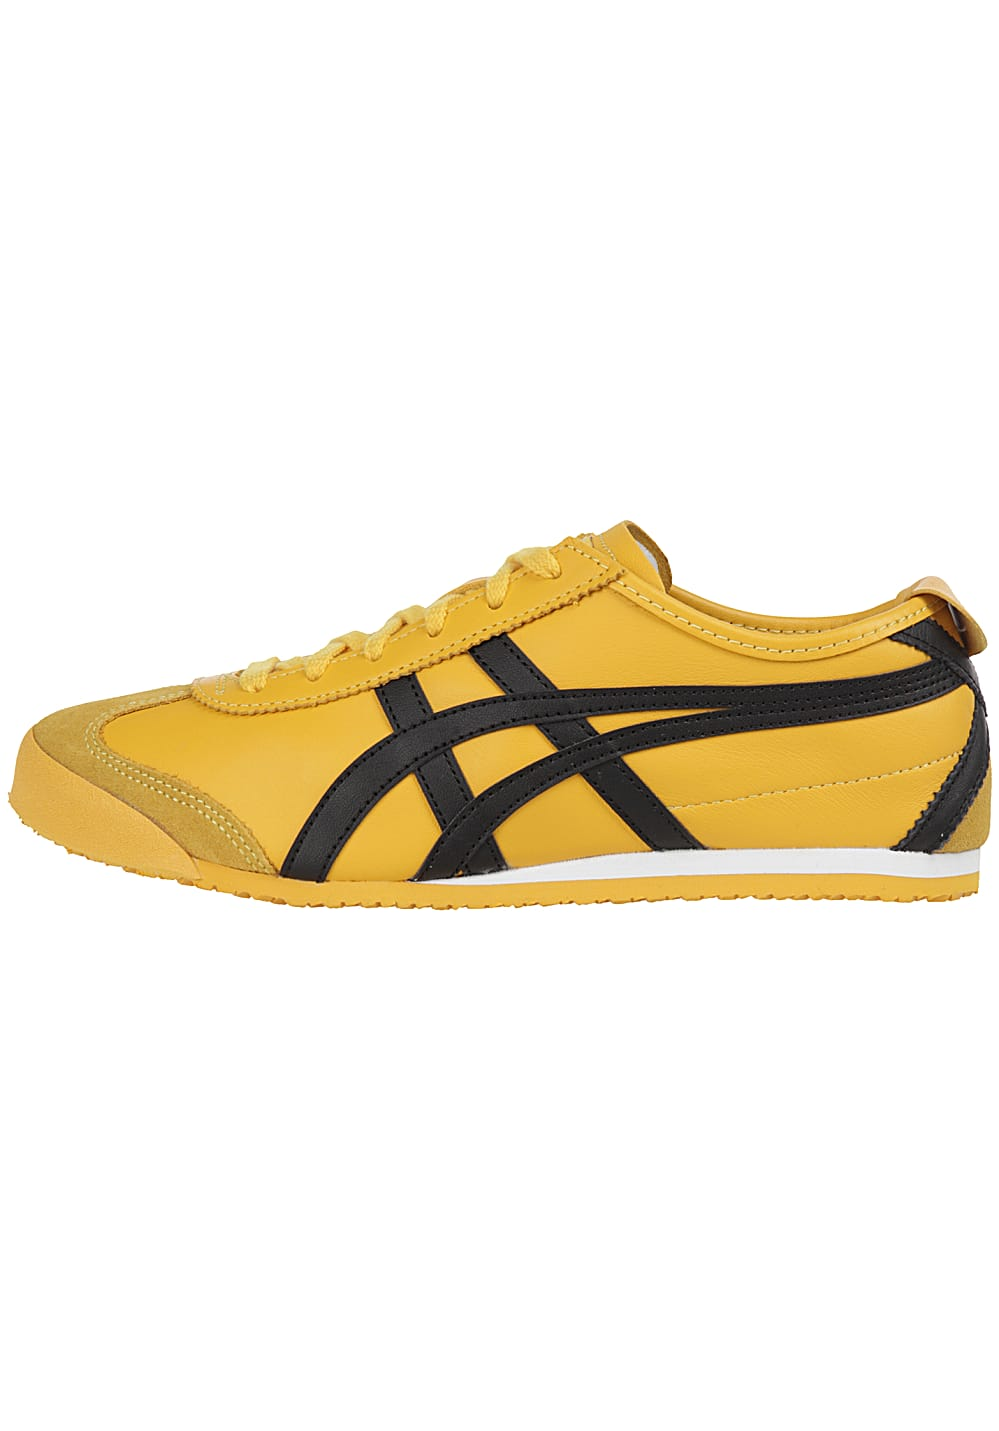 onitsuka tiger mexico 66 yellow black womens trainers nike